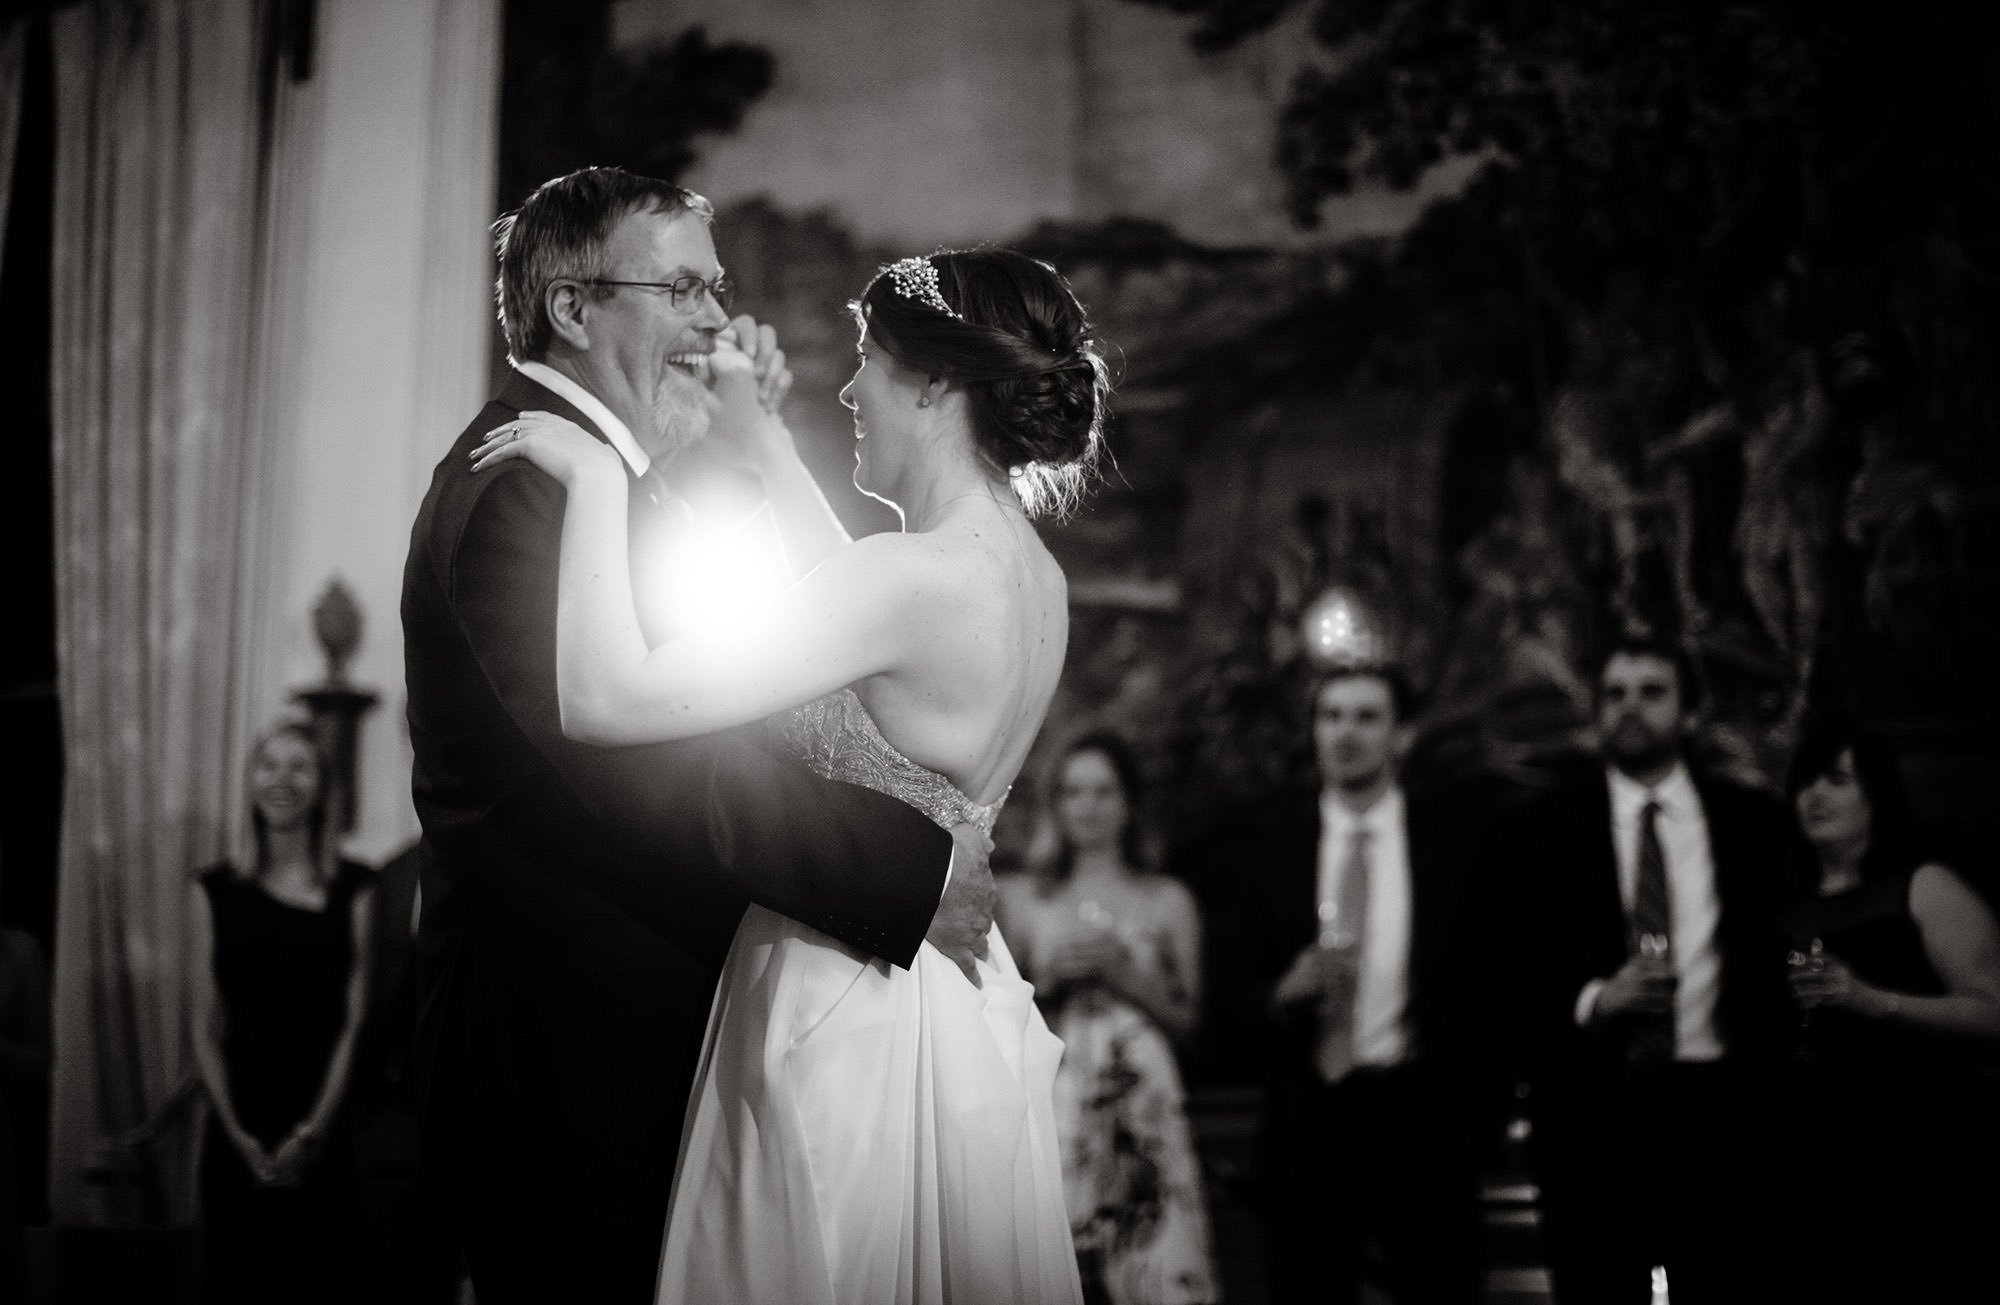 The bride dances with her father at this Meridian House wedding.